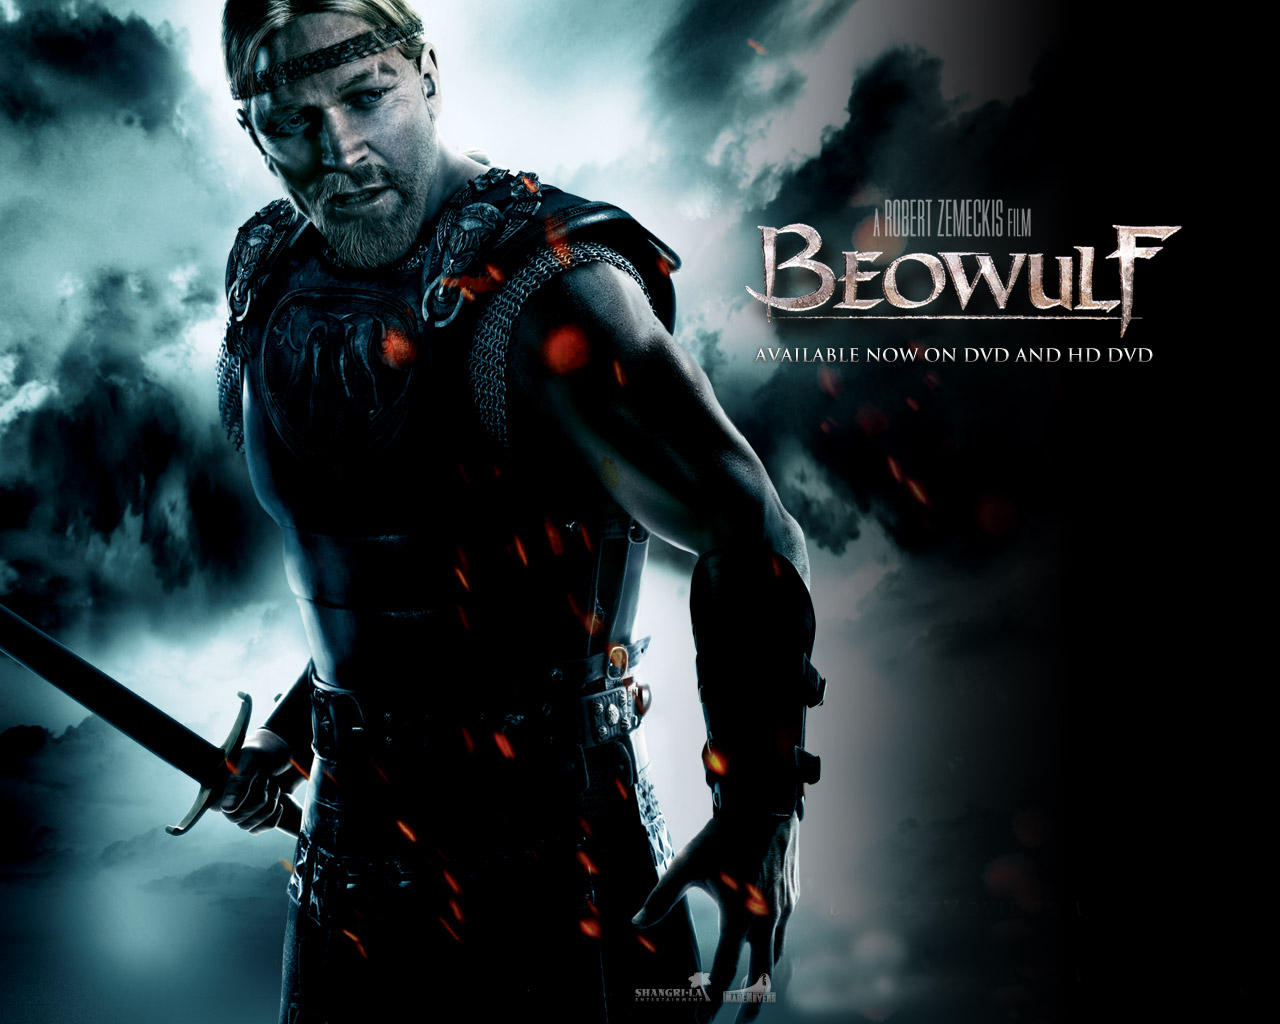 Hollywood Movies Hd Wallpapers: Beowulf Hollywood Movie HD Wallpapers Collection Http